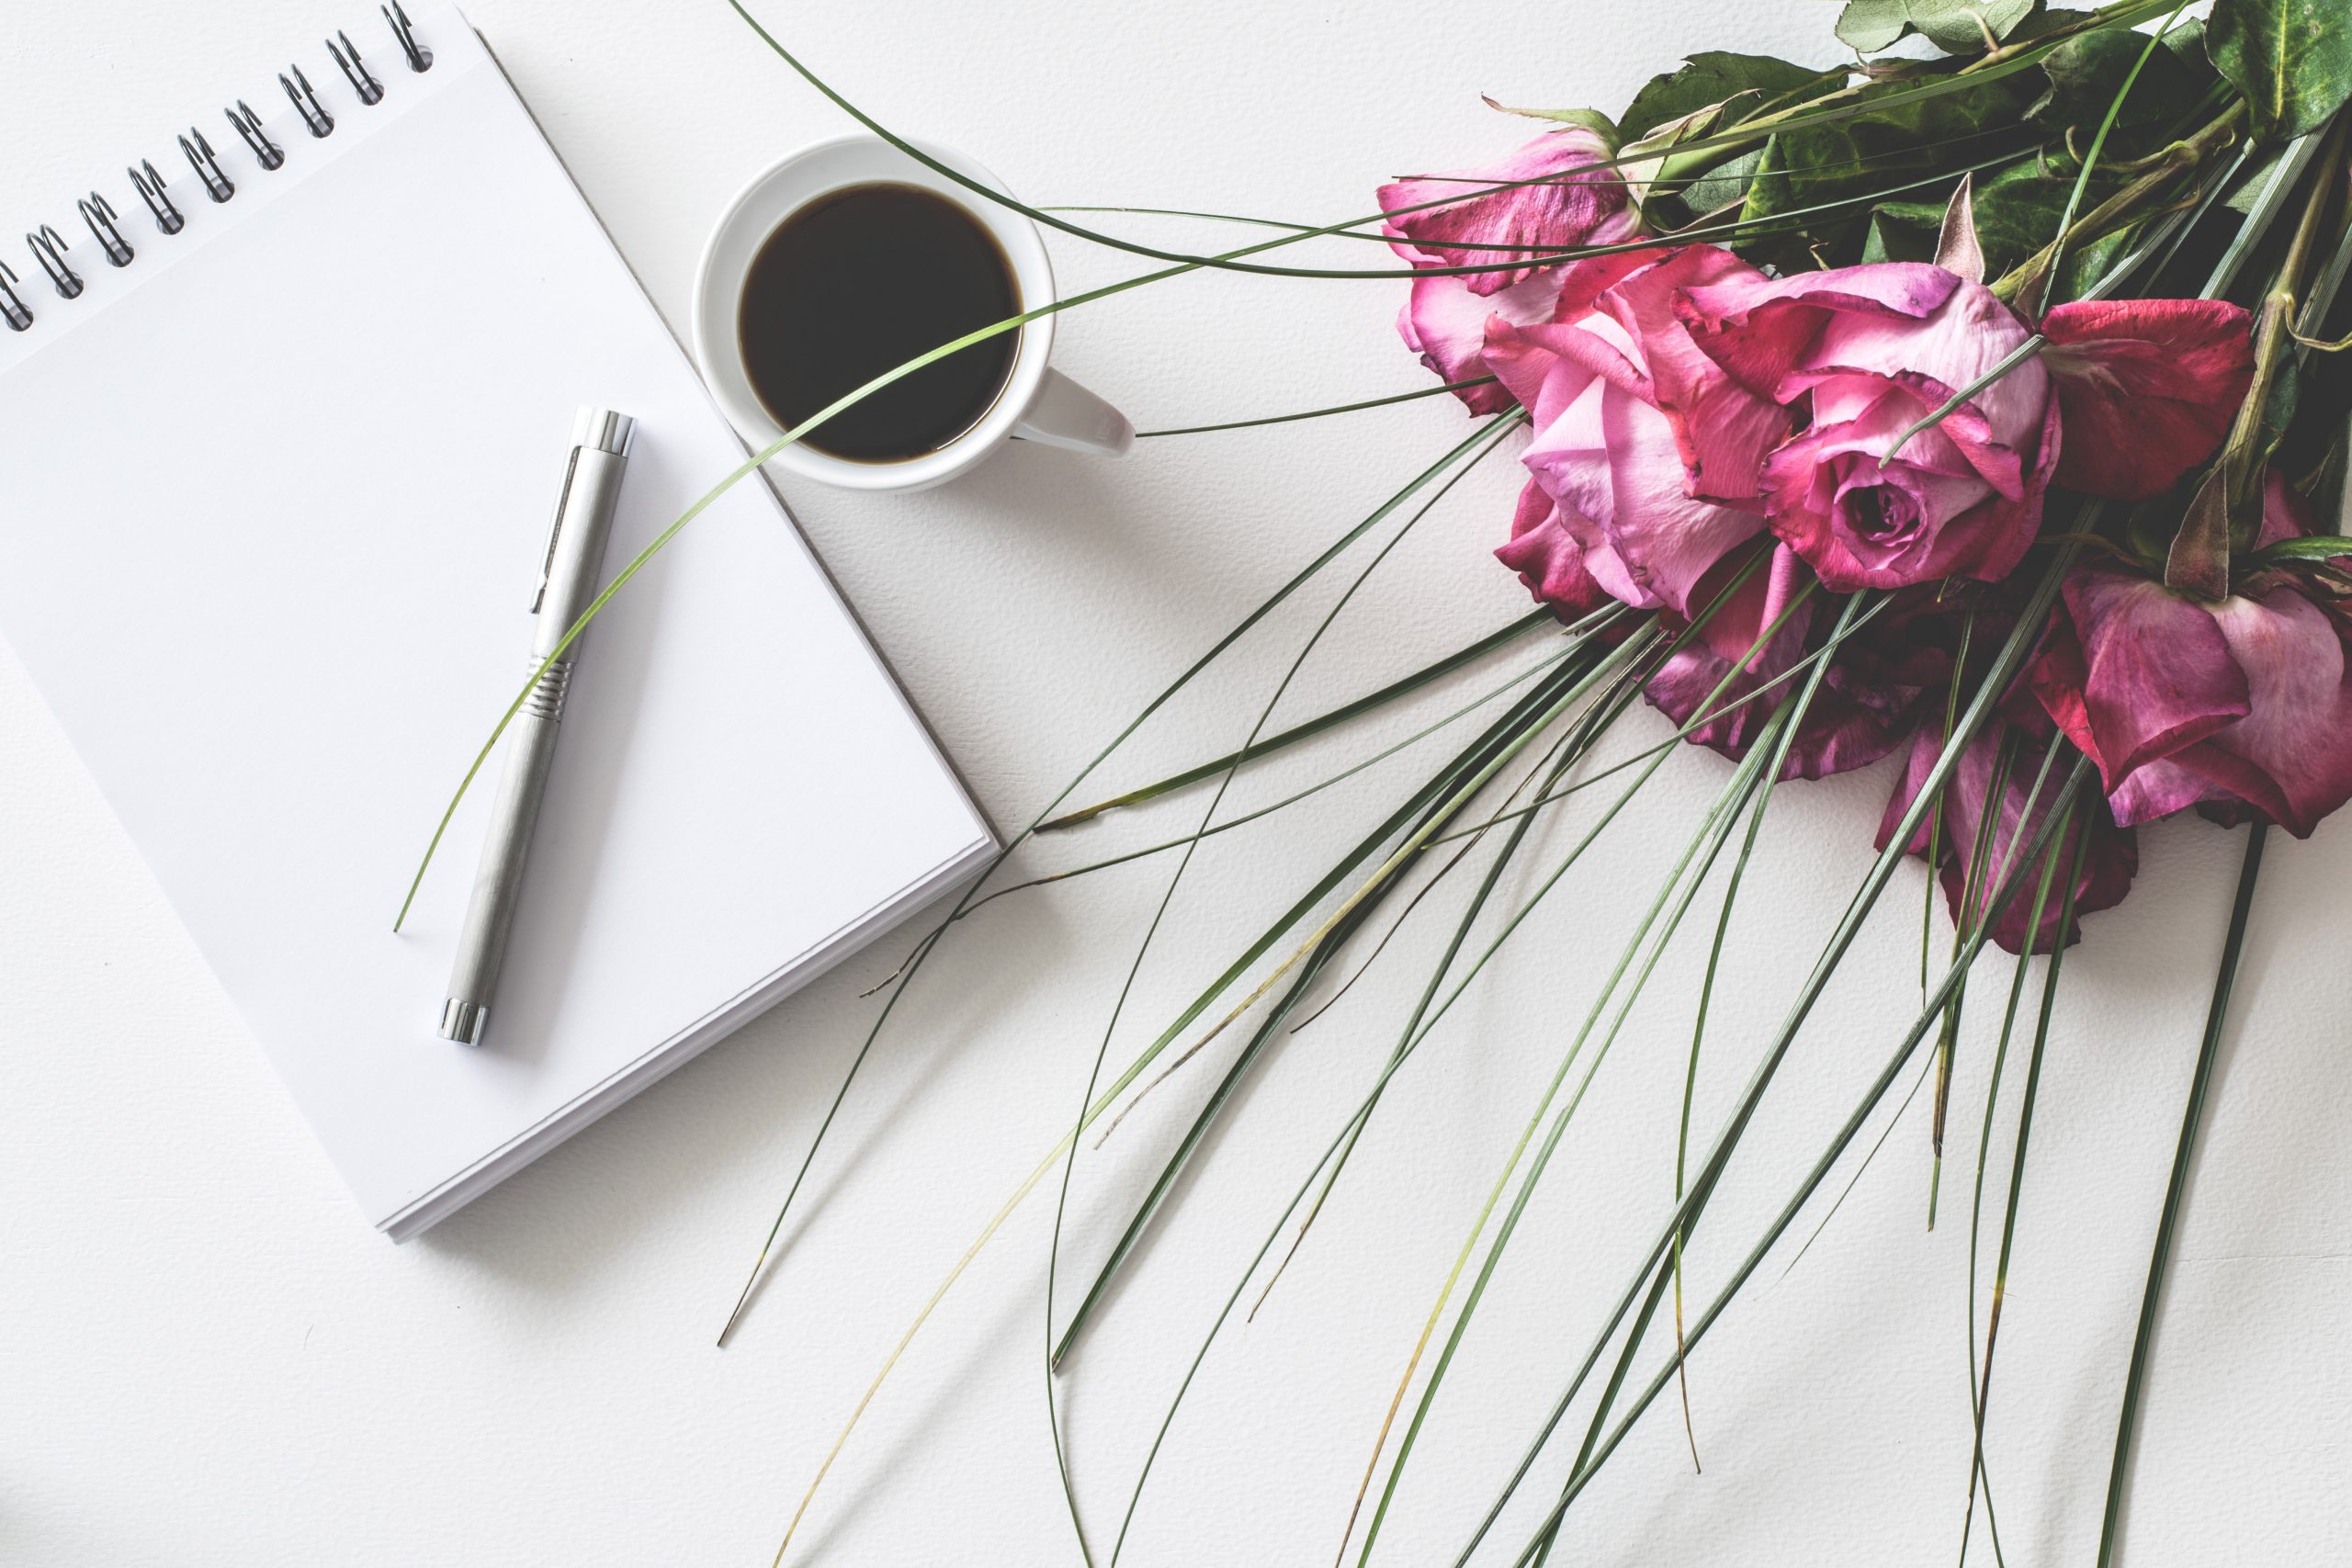 Open notepad with cup of coffee and bouquet of flowers on white surface.